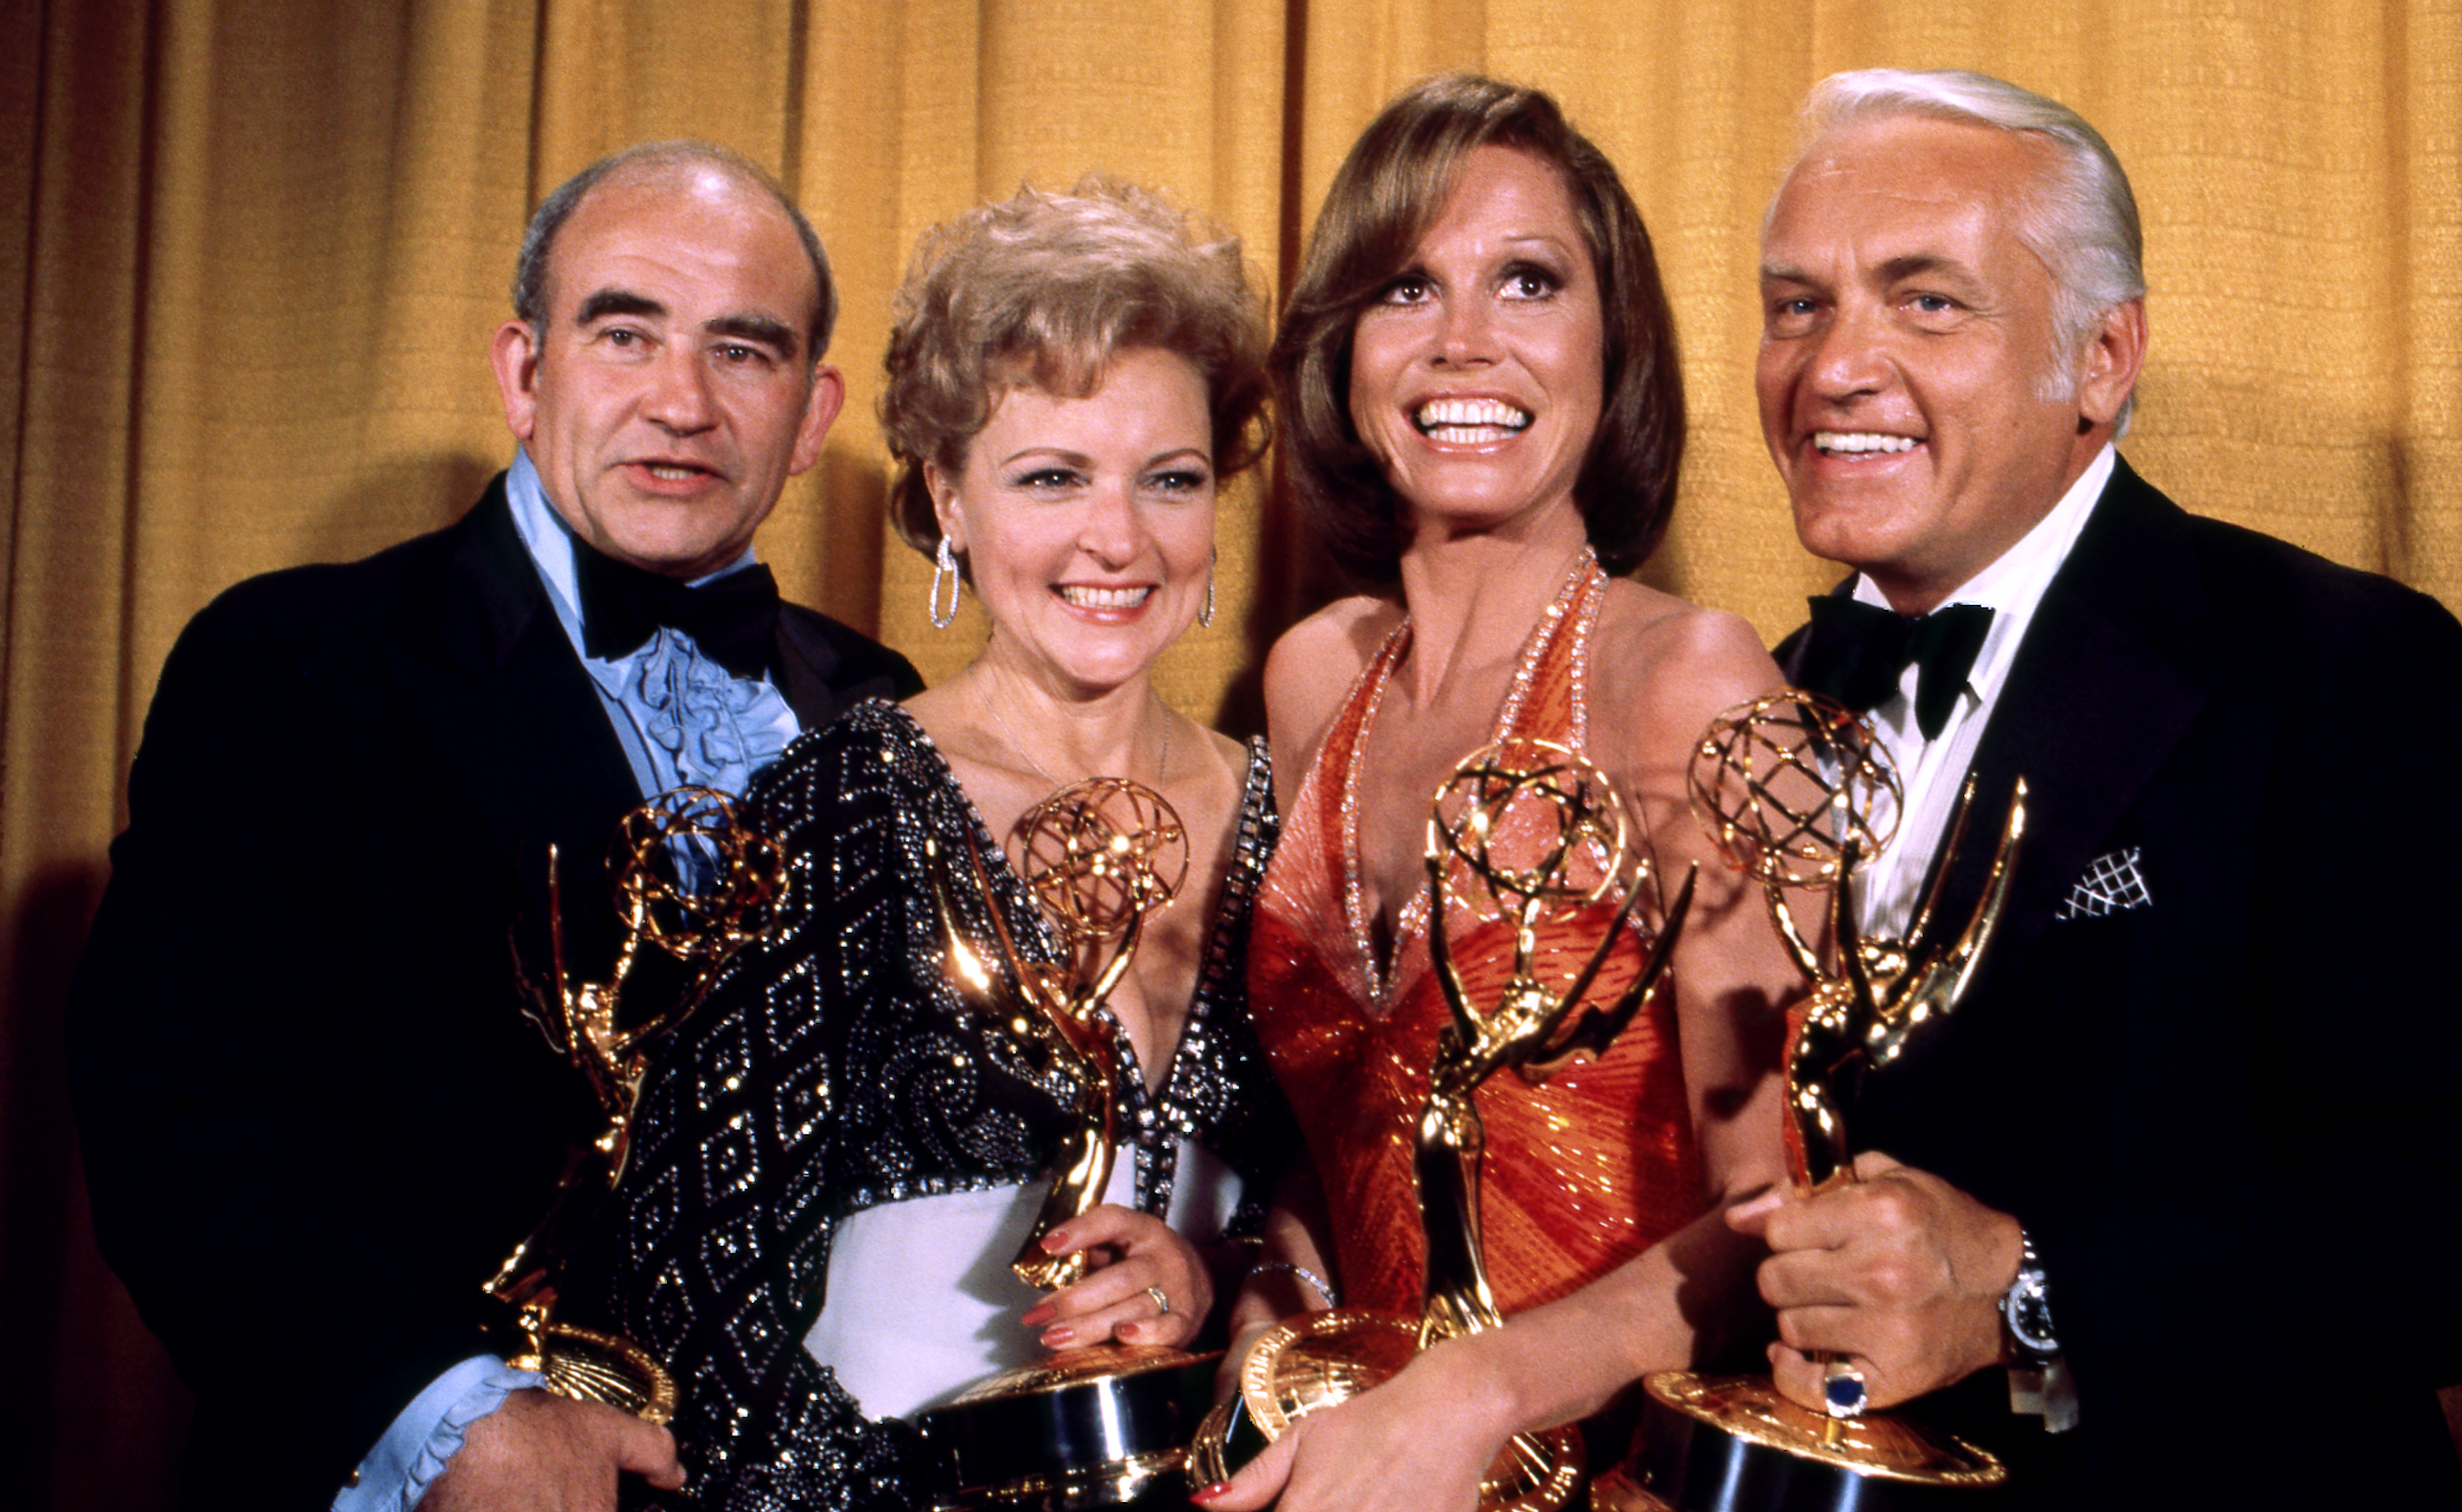 Edward Asner, Betty White, Mary Tyler Moore and Ted Knight holding their Emmy Awards in the press room at the 28th Annual Primetime Emmy Awards on May 17, 1976 at The Shubert Theatre in Los Angeles, California.